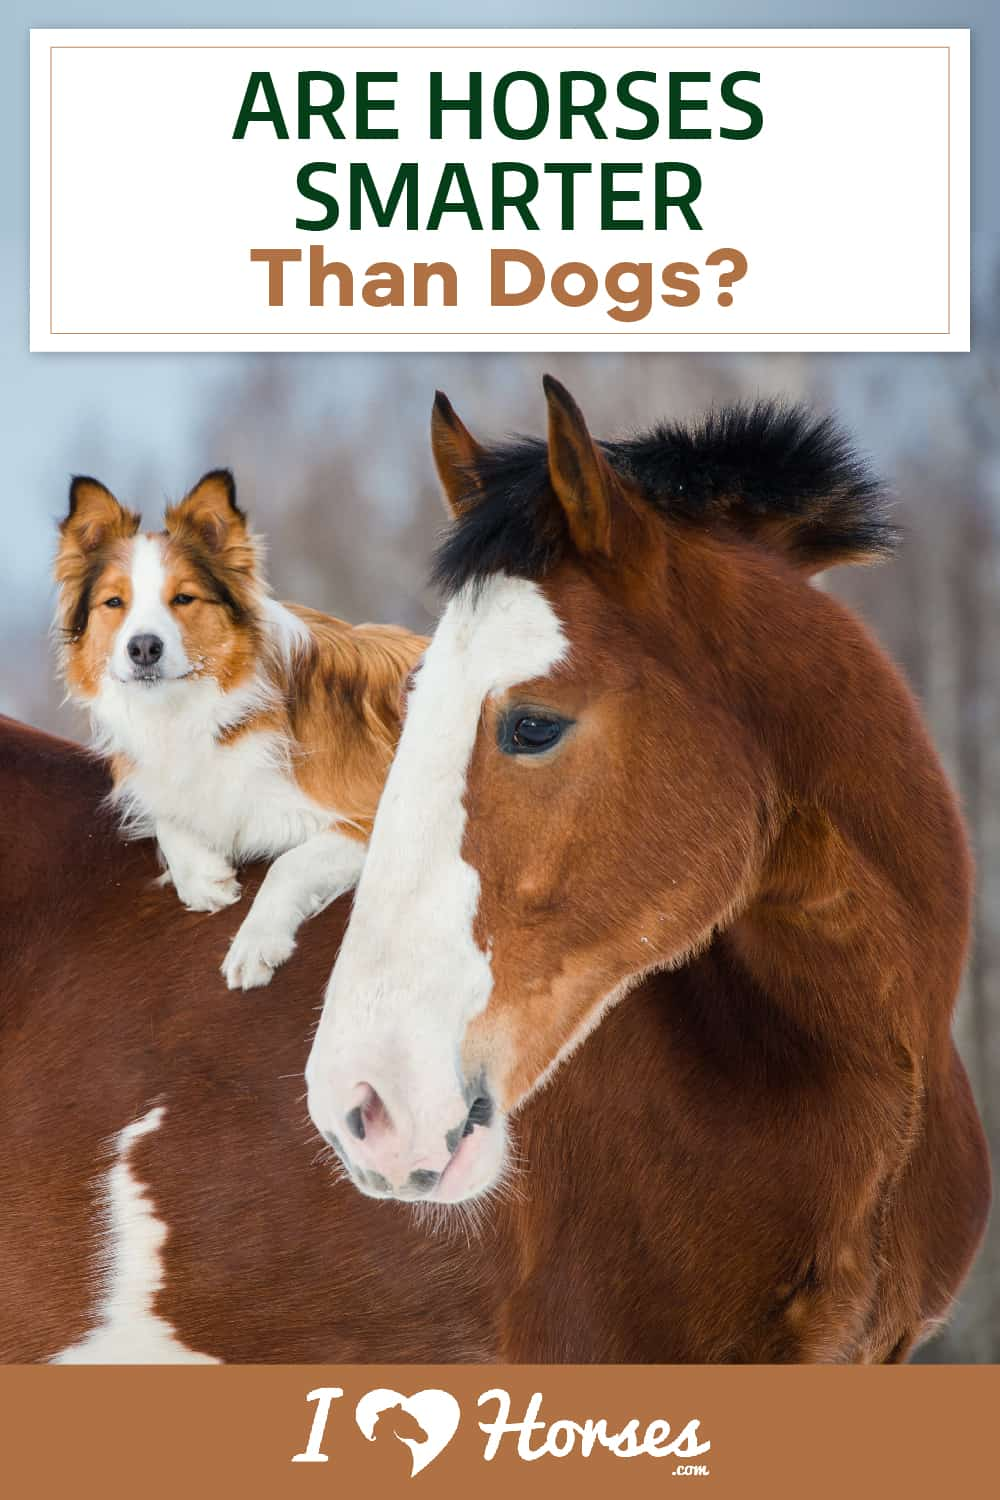 Are Horses Smarter Than Dogs-01-02, horse and dog, horse and dog friends